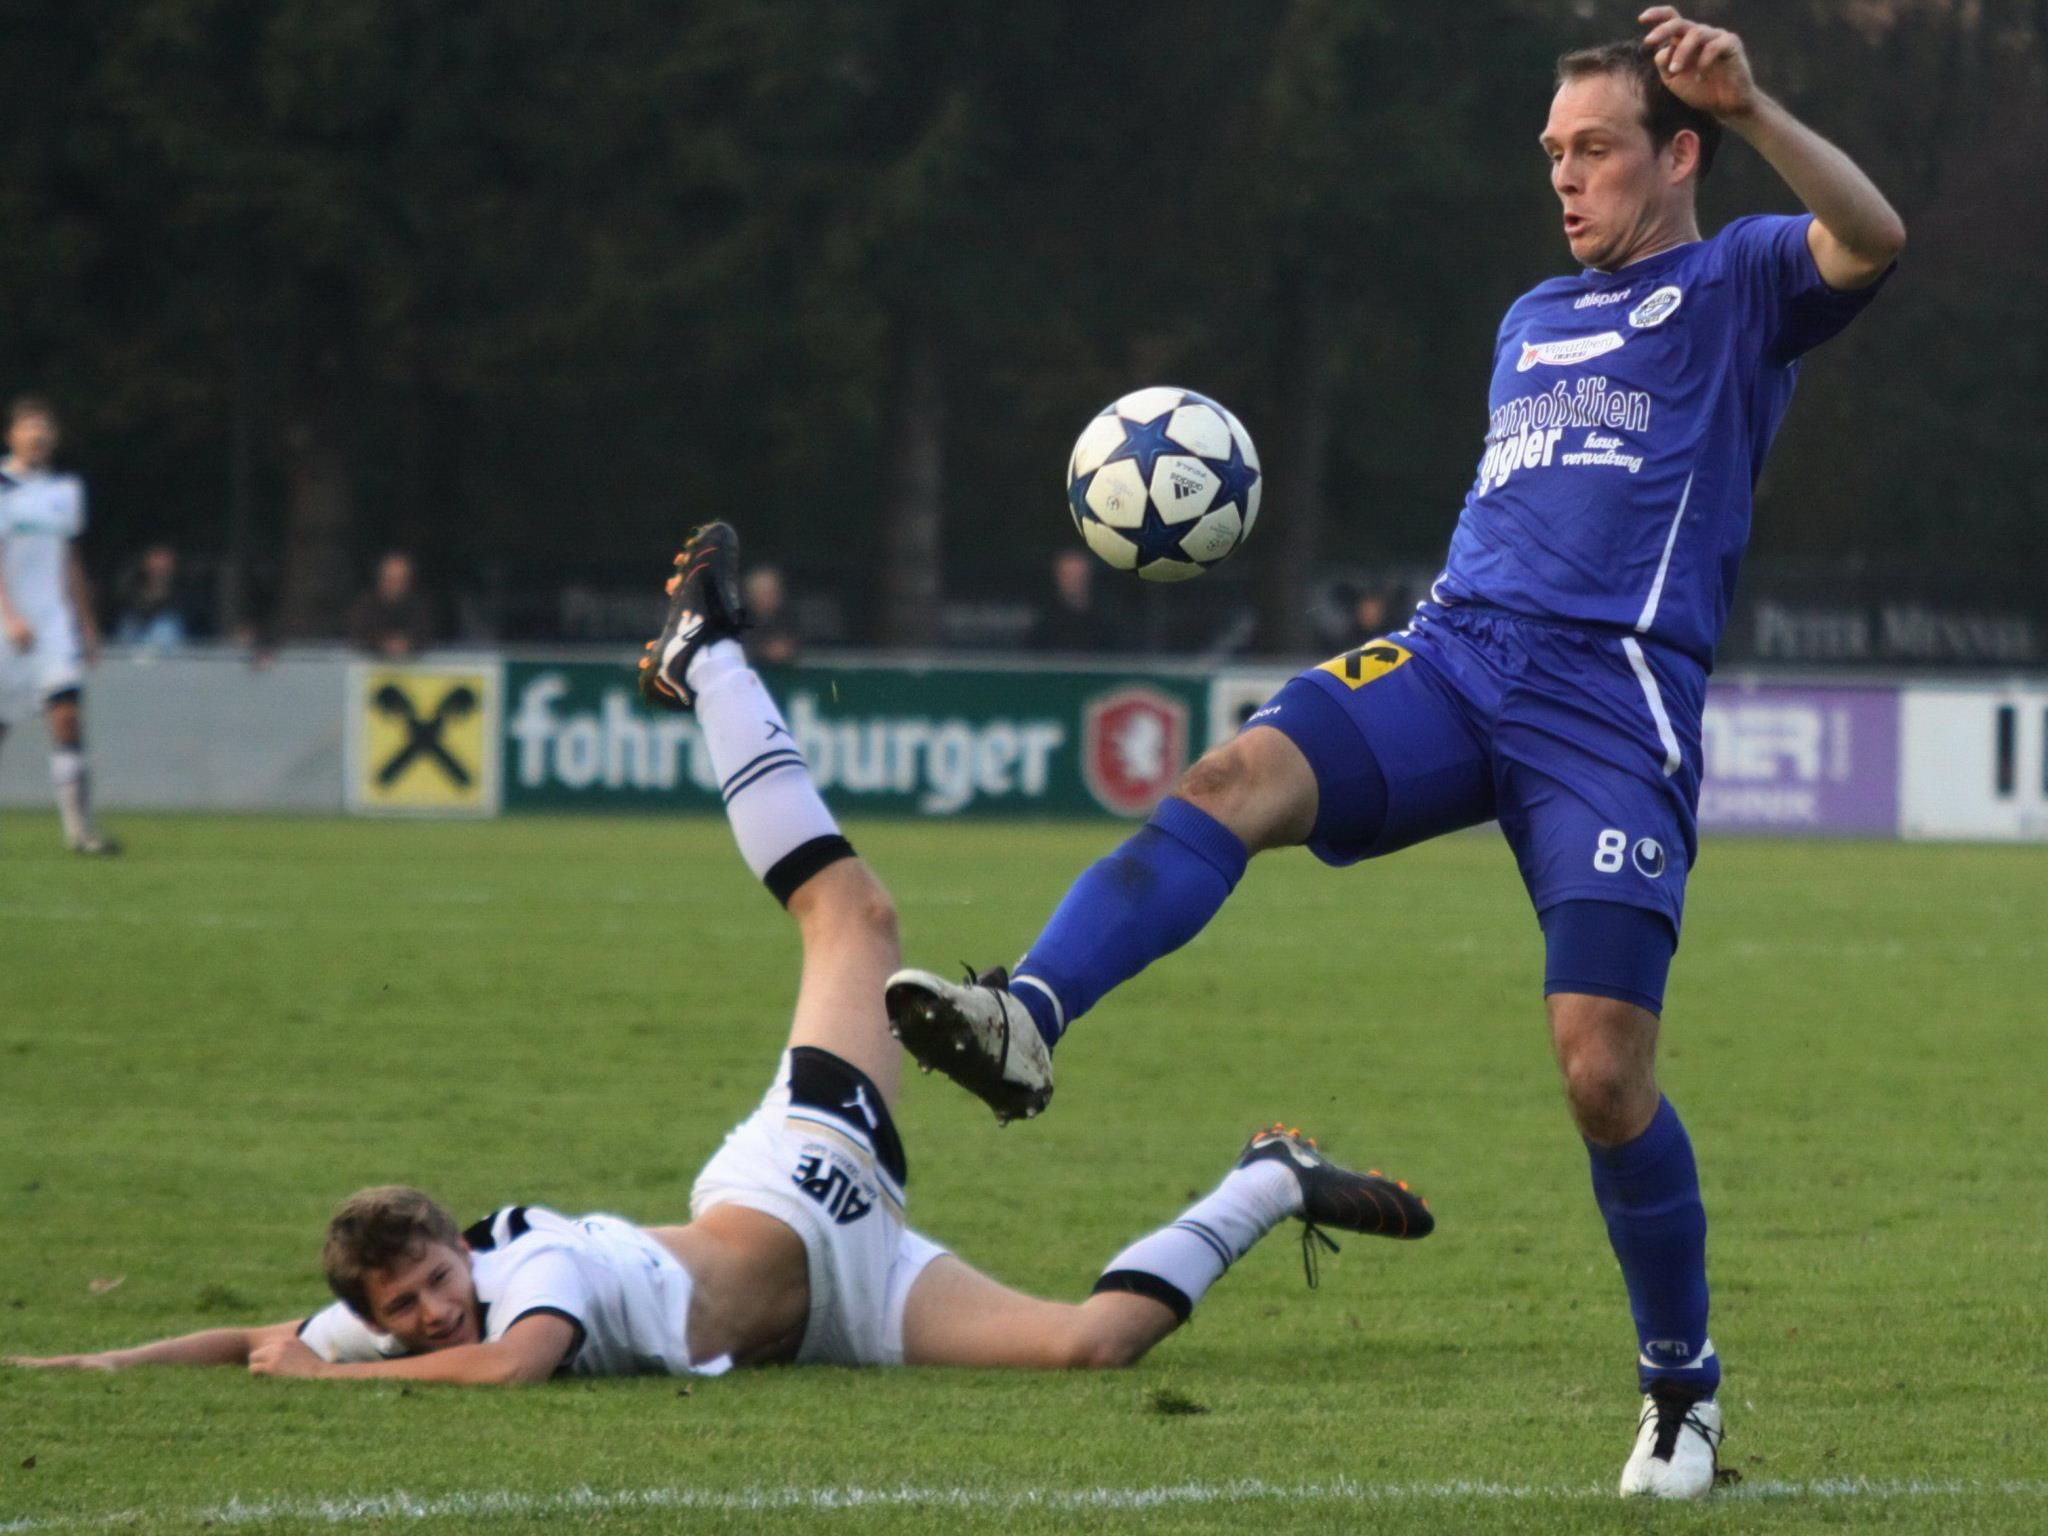 Hard war gegen Leader Wattens chancenlos.